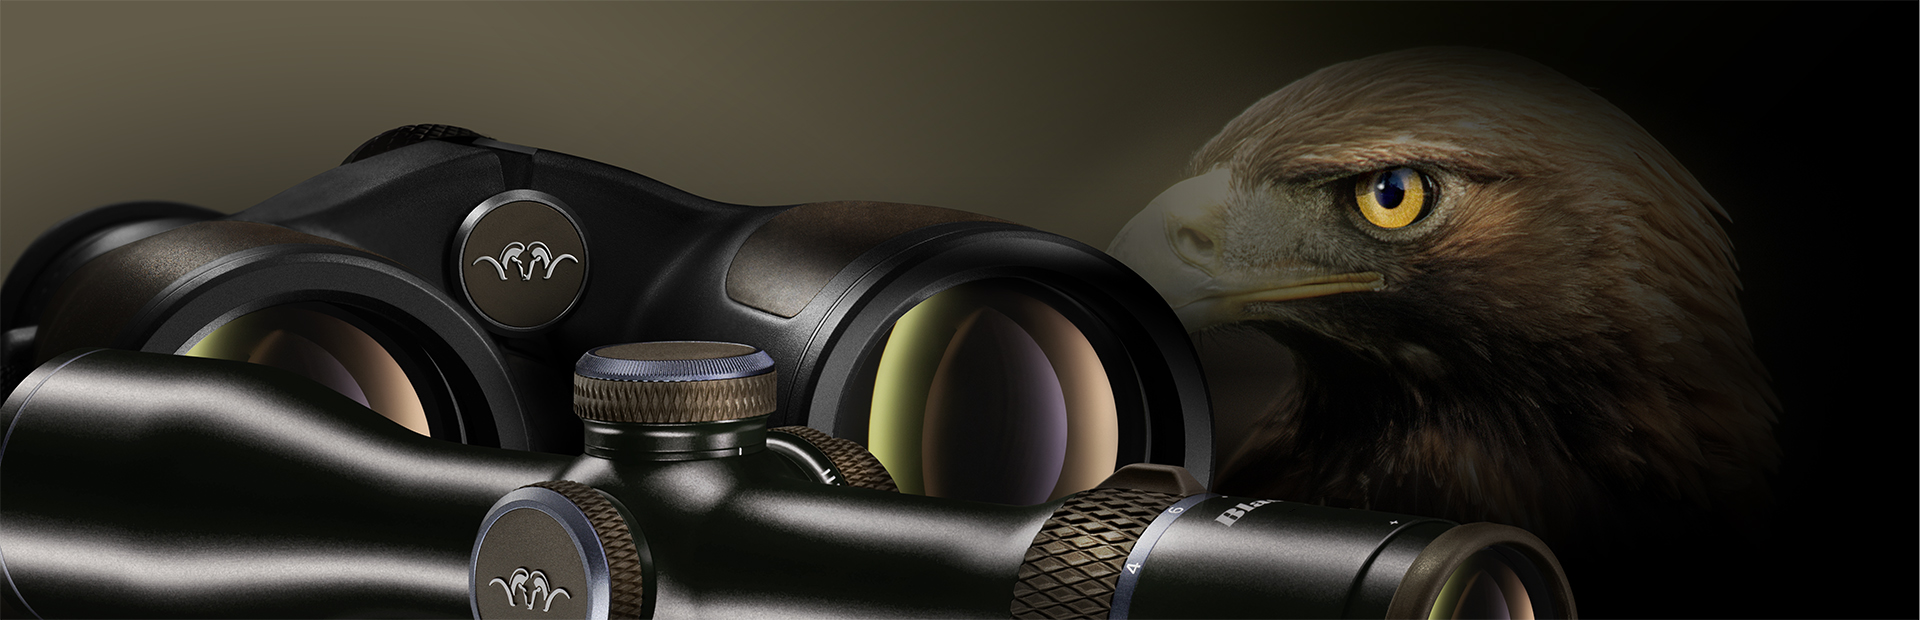 BLASER OPTICS FOR HUNTING